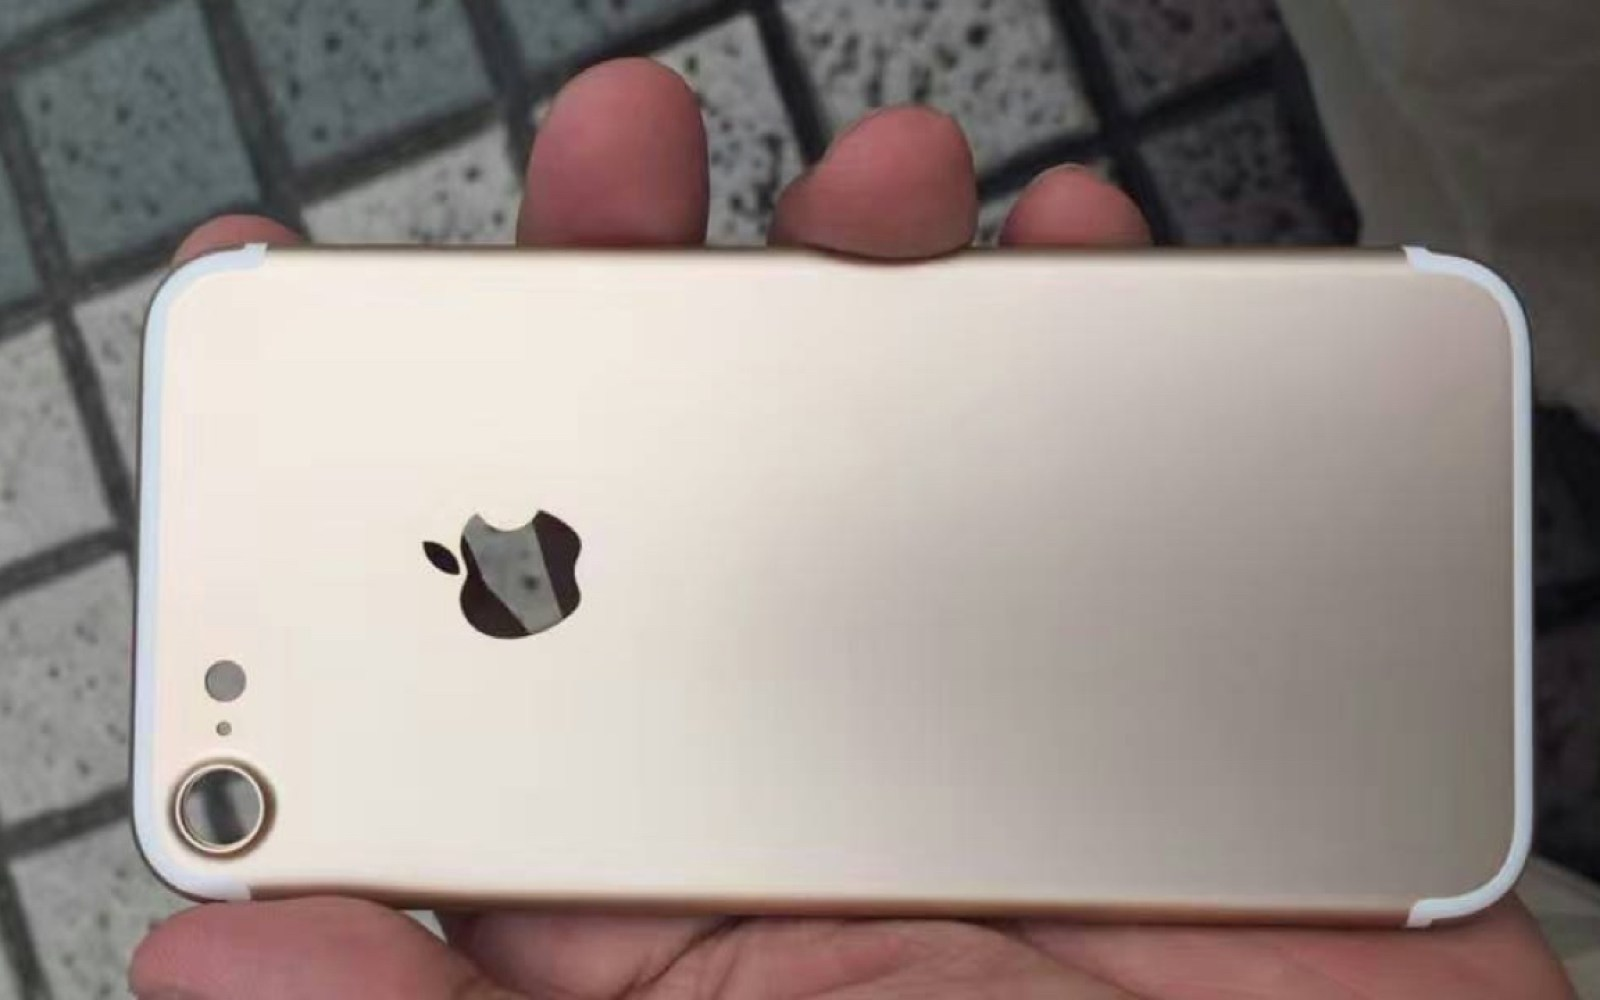 Latest iPhone 7 photo leak provides best look yet at new antenna lines design and larger protruding camera